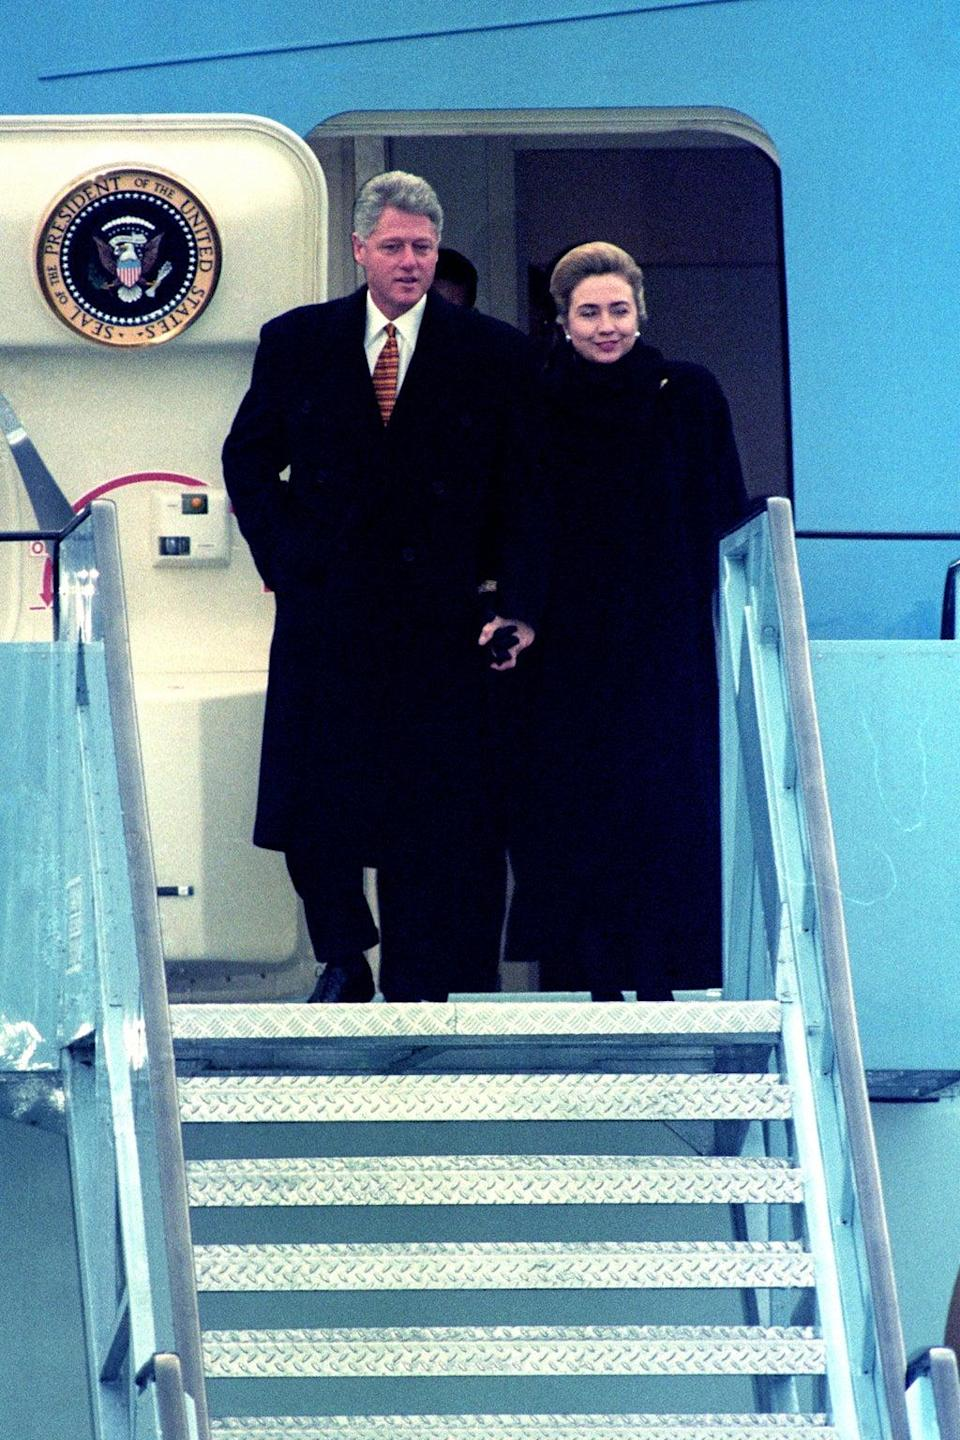 President Bill Clinton and first lady Hillary Clinton arrive in Belfast in the 1990s (PA) (PA Archive)